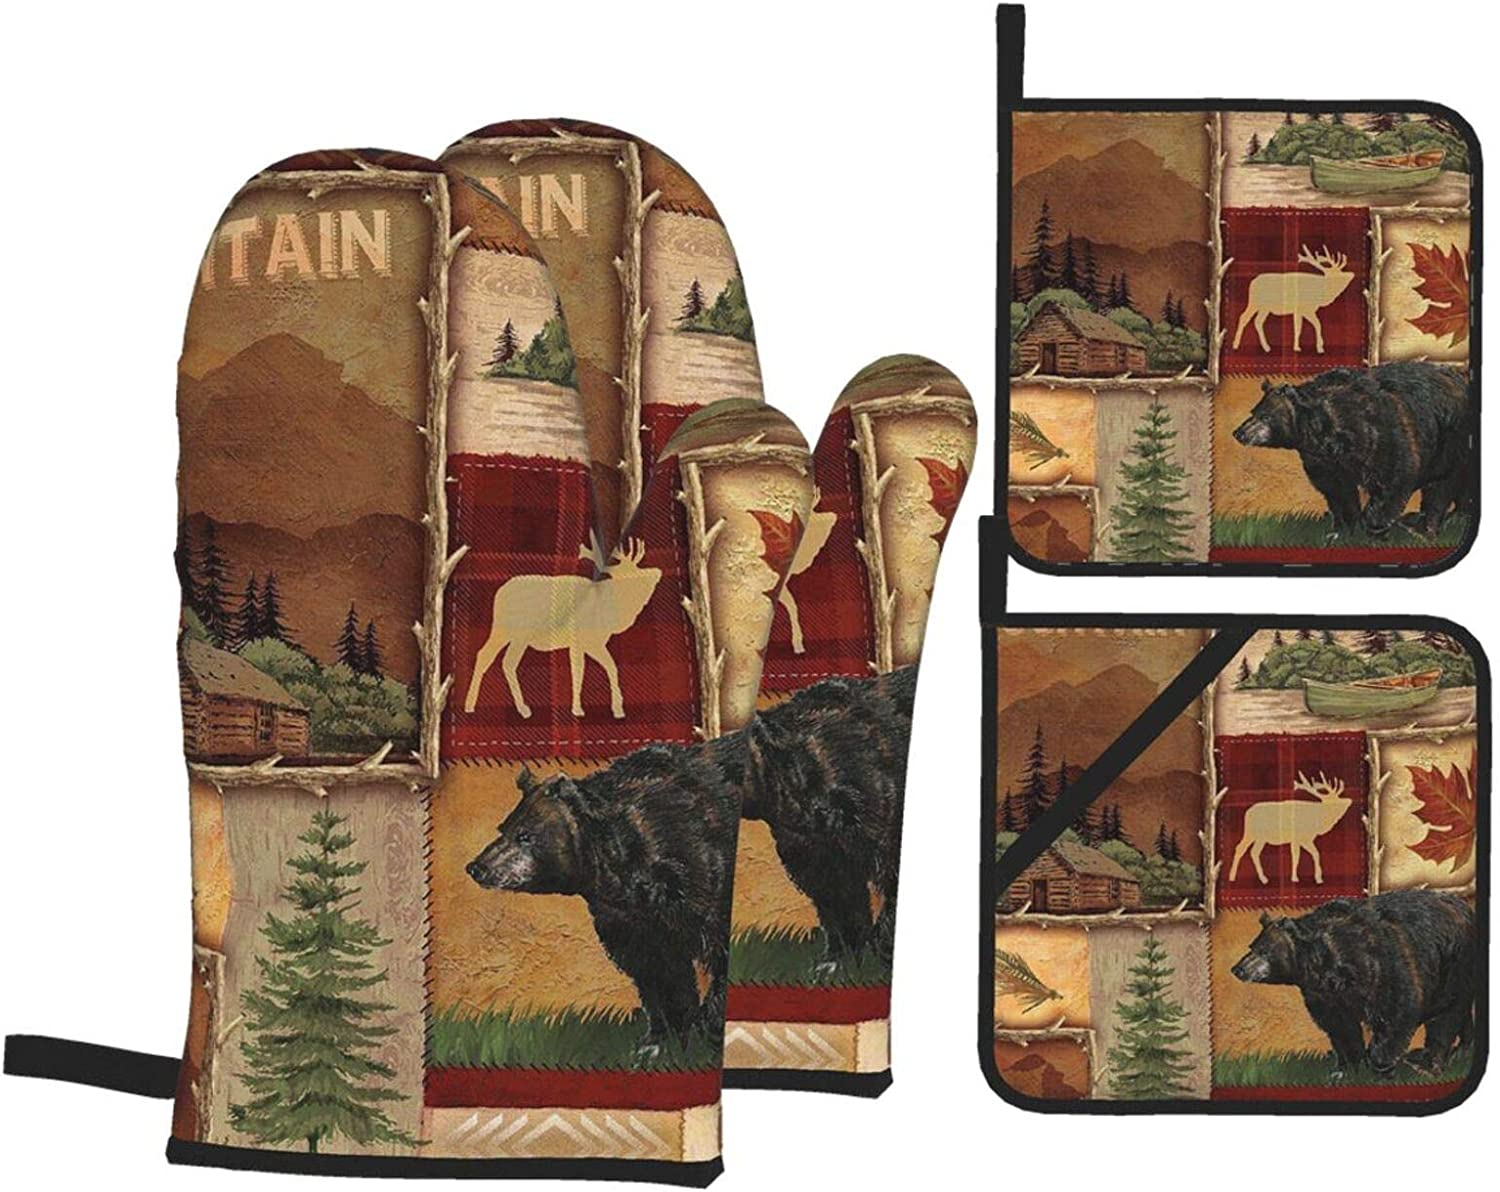 Msacrh Lodge Style Northwoods Cabin Oven Mitts and Pot Holders S